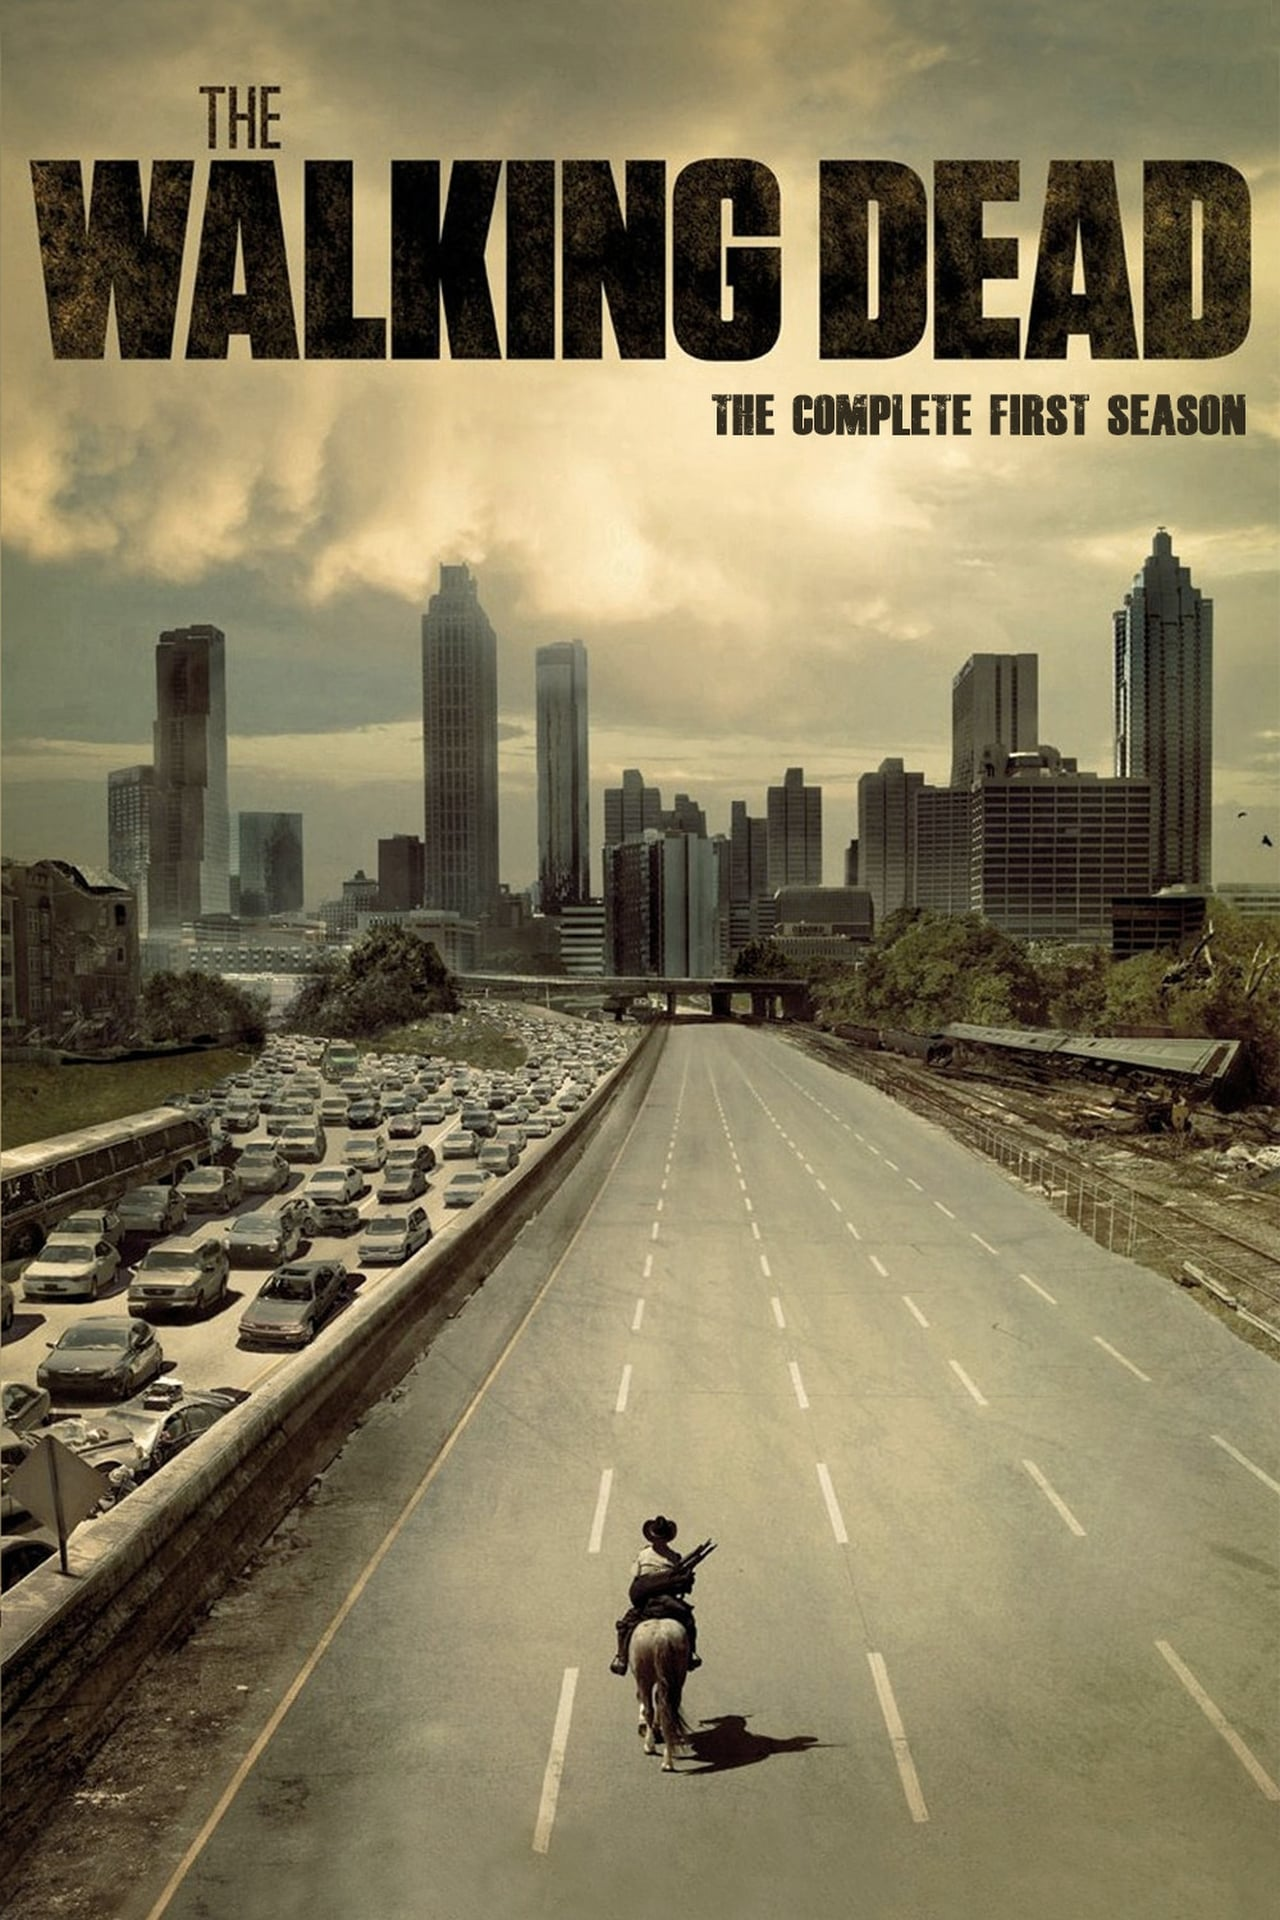 Putlocker The Walking Dead Season 1 (2010)